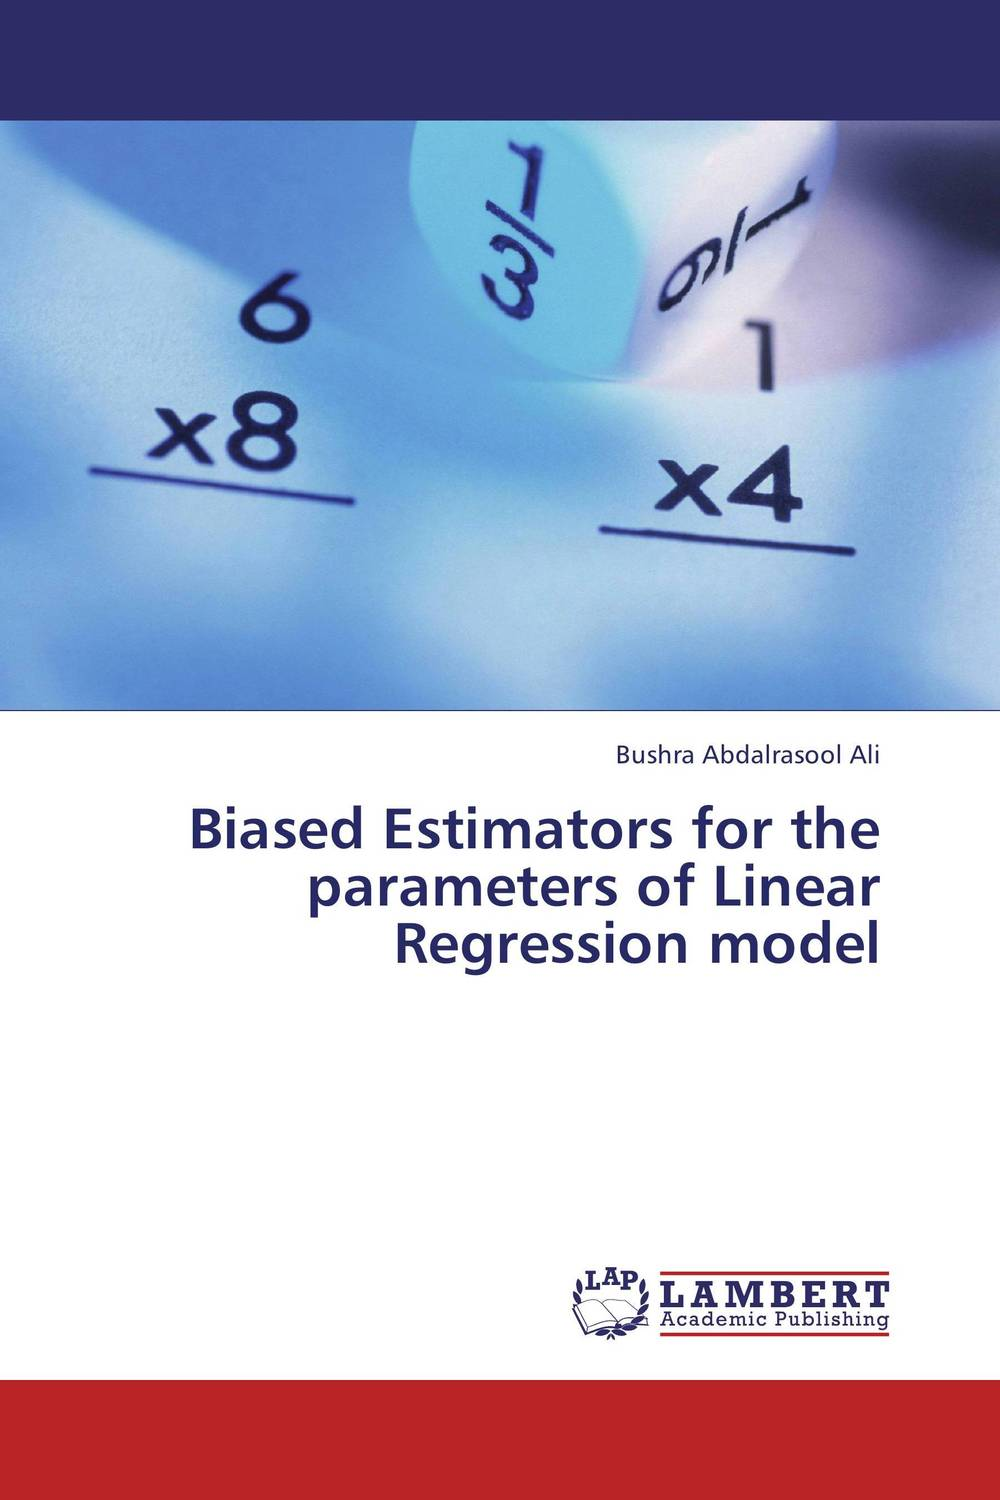 Biased Estimators for the parameters of Linear Regression model fuzzy linear regression